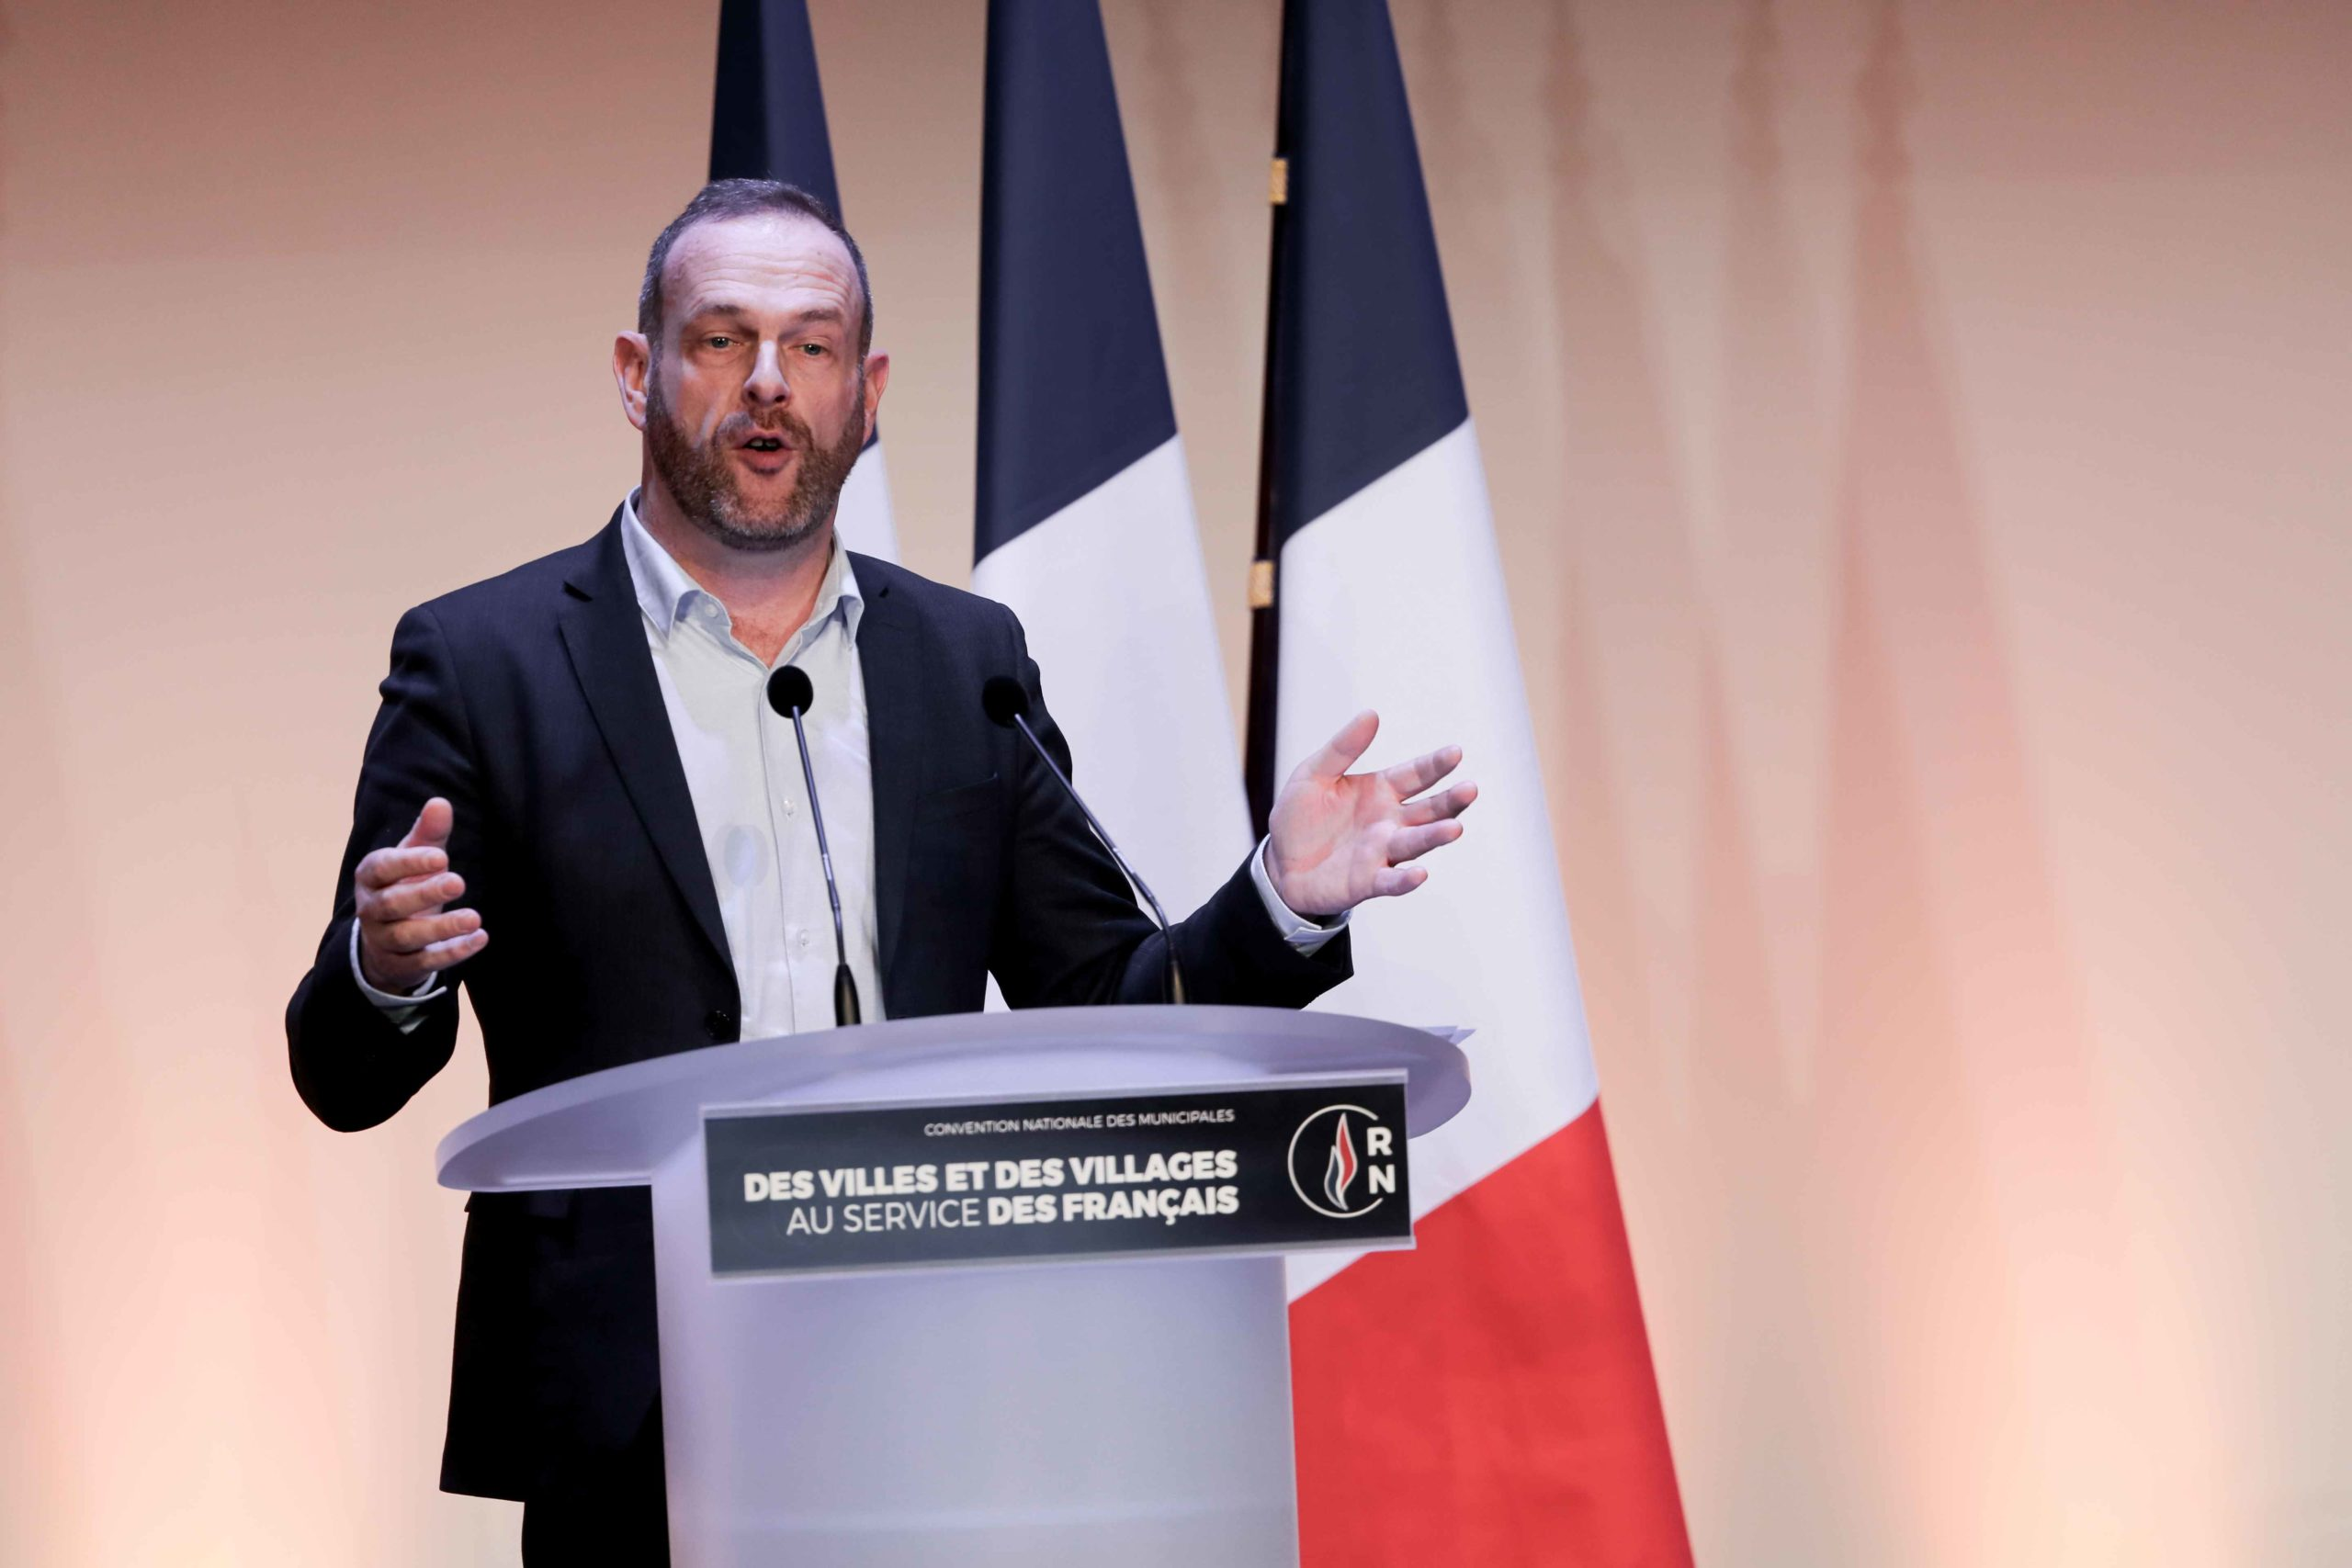 Steeve Briois, Mayor of Hénin Beaumont (Pas-de-Calais) and the Rassemblement national (RN) candidate for re-election in the forthcoming mayoral election, speaks in Paris, on January 12, 2020, during a meeting to launch the RN campaign candidates for the n